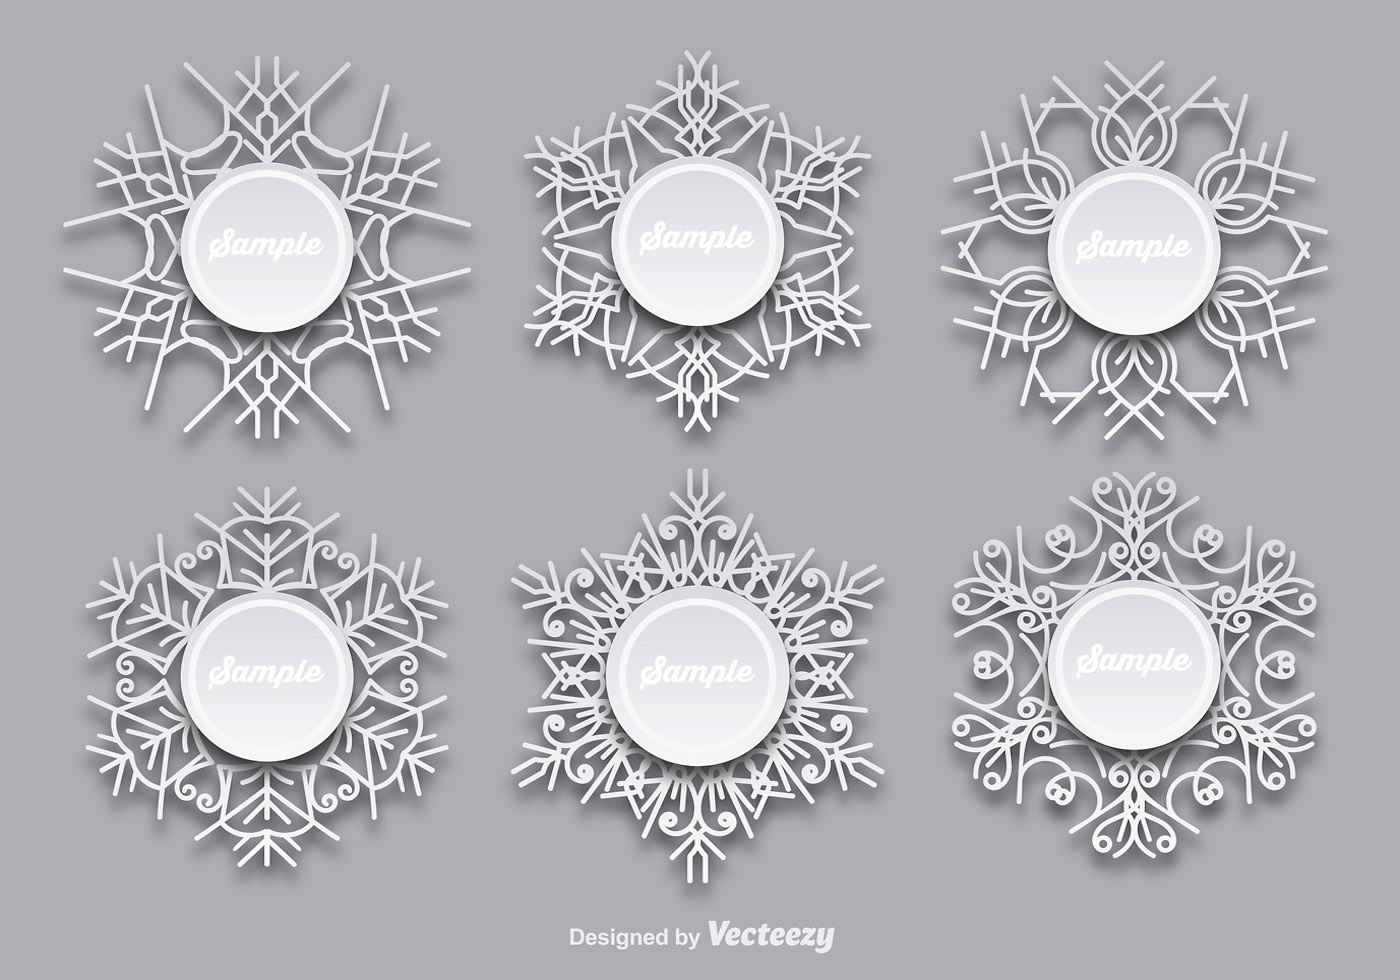 Snowflakes templates - Download Free Vector Art, Stock Graphics & Images